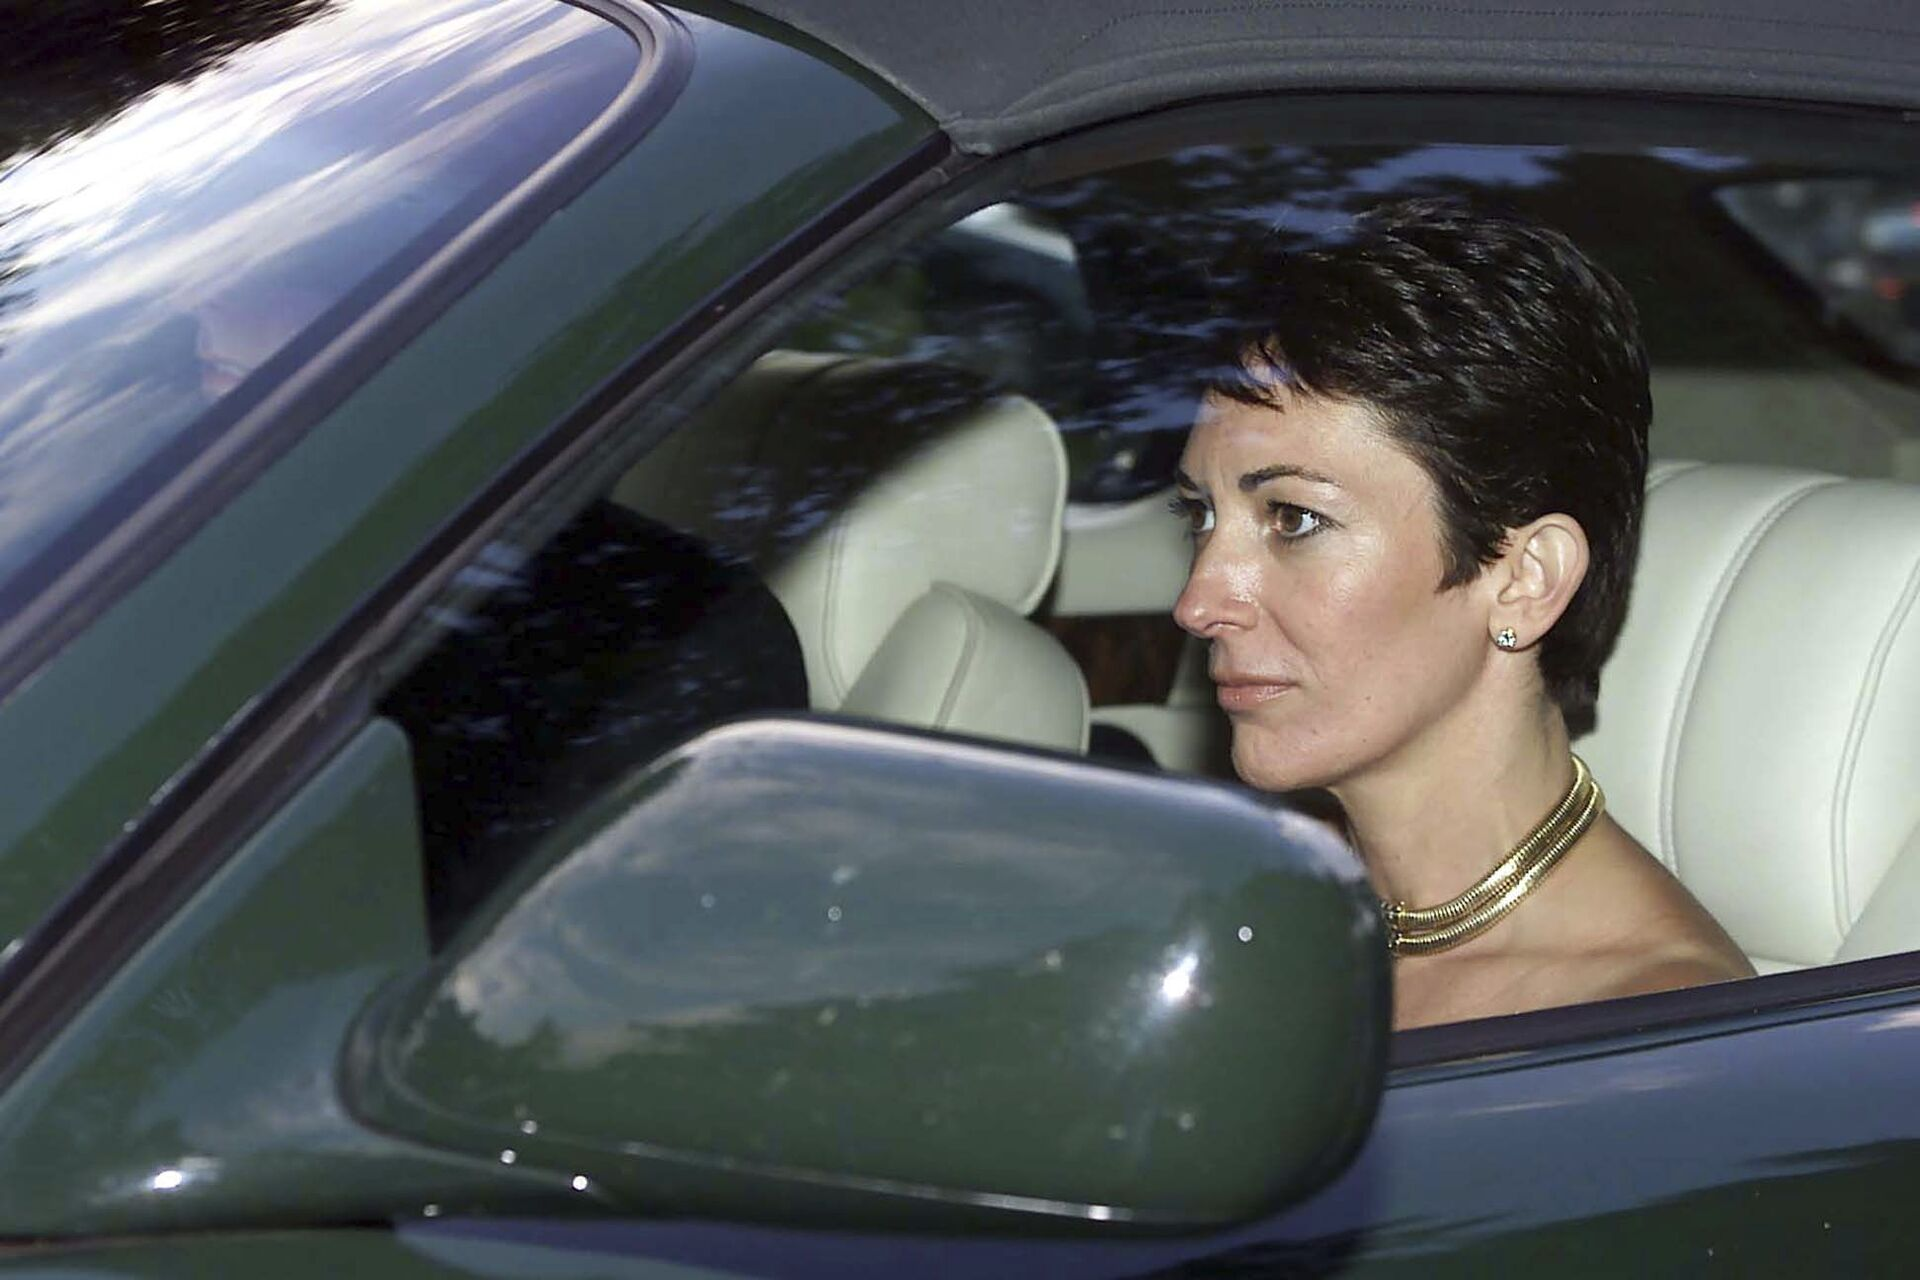 FILE - In this Sept. 2, 2000 file photo, British socialite Ghislaine Maxwell, driven by Britain's Prince Andrew leaves the wedding of a former girlfriend of the prince, Aurelia Cecil, at the Parish Church of St Michael in Compton Chamberlayne near Salisbury, England. The FBI said Thursday July 2, 2020, Ghislaine Maxwell, who was accused by many women of helping procure underage sex partners for Jeffrey Epstein, has been arrested in New Hampshire. - Sputnik International, 1920, 07.09.2021